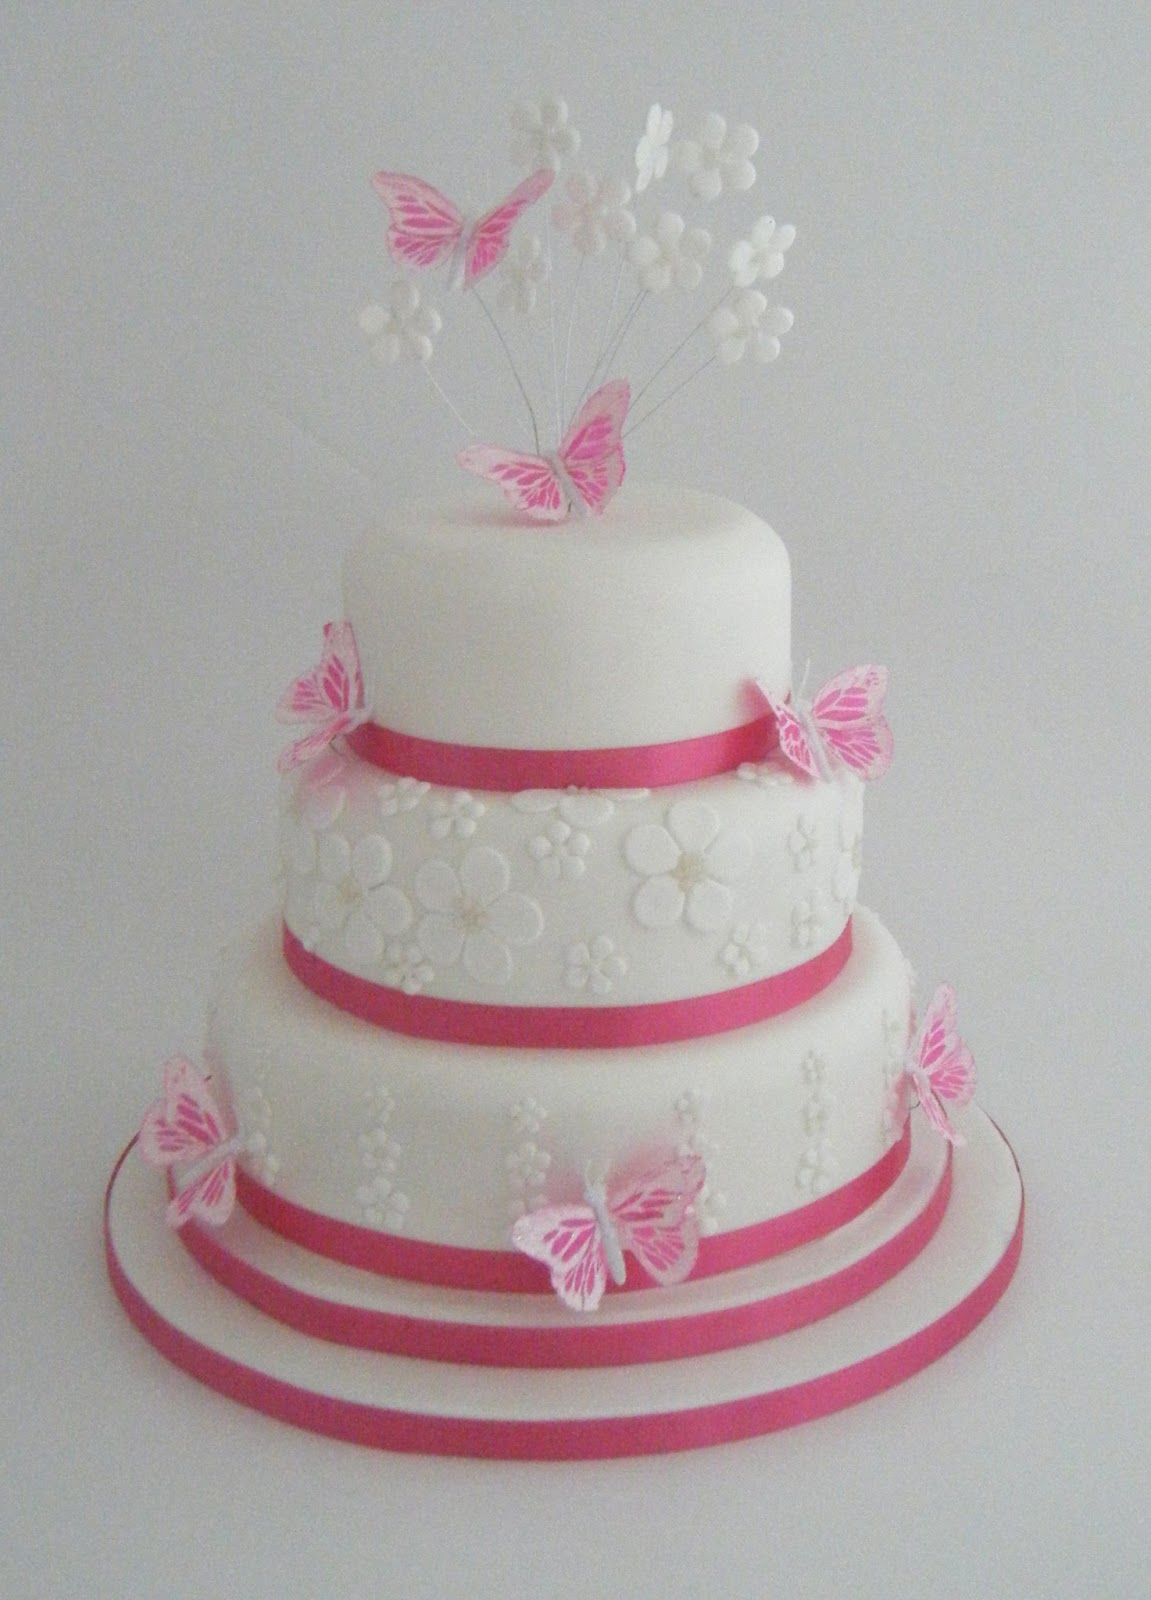 Cake Decoration Butterfly : Wedding Cakes: Top 10 Butterfly Wedding Cake Decorations ...